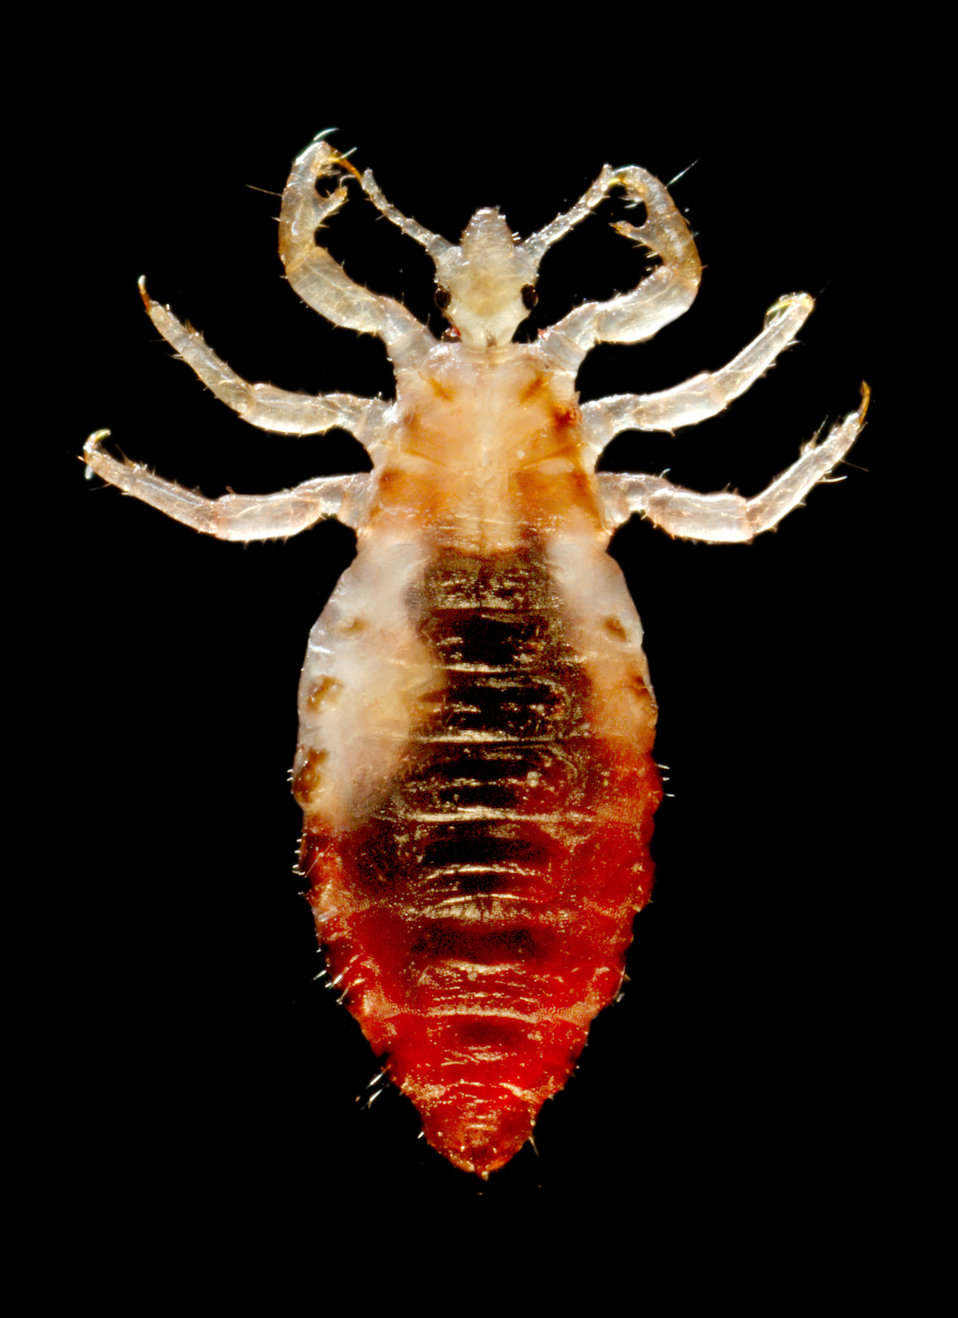 This 2006 photograph depicted a dorsal view of a male body louse, Pediculus humanus var. corporis. Some of the external morphologic features